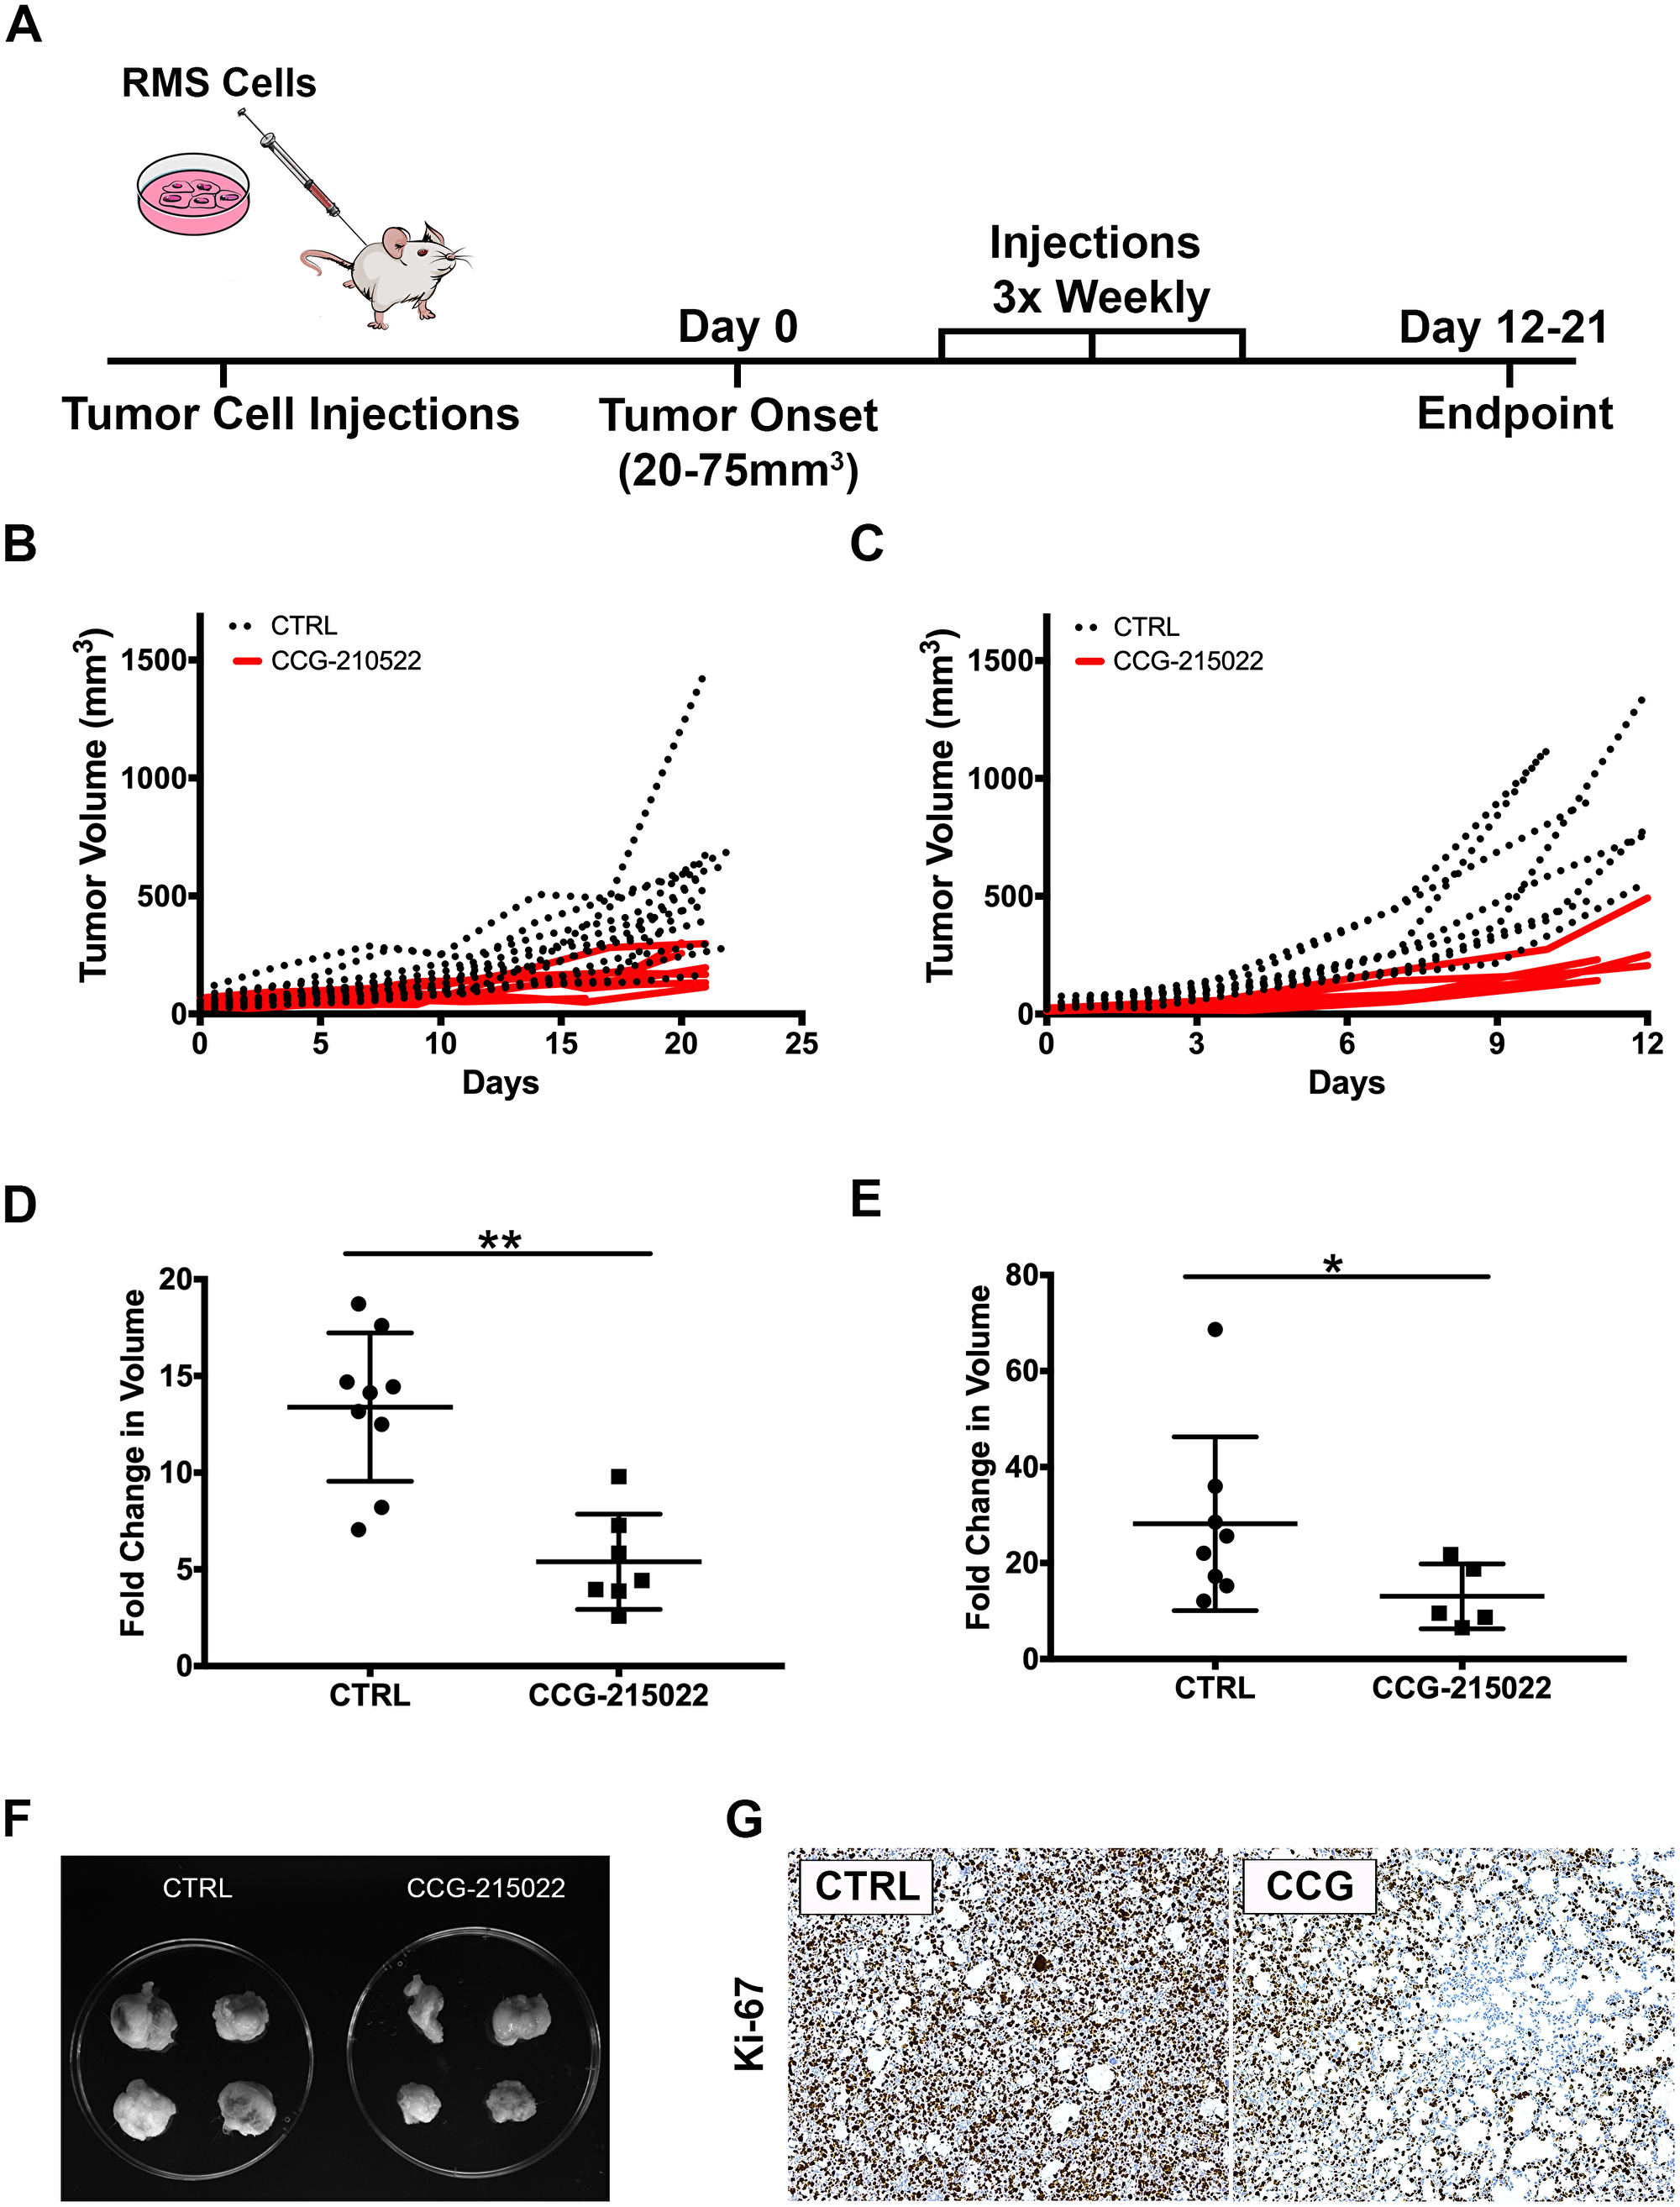 Treatment of RMS tumor with CCG-215022, a GRK5 inhibitor, reduces tumor growth.